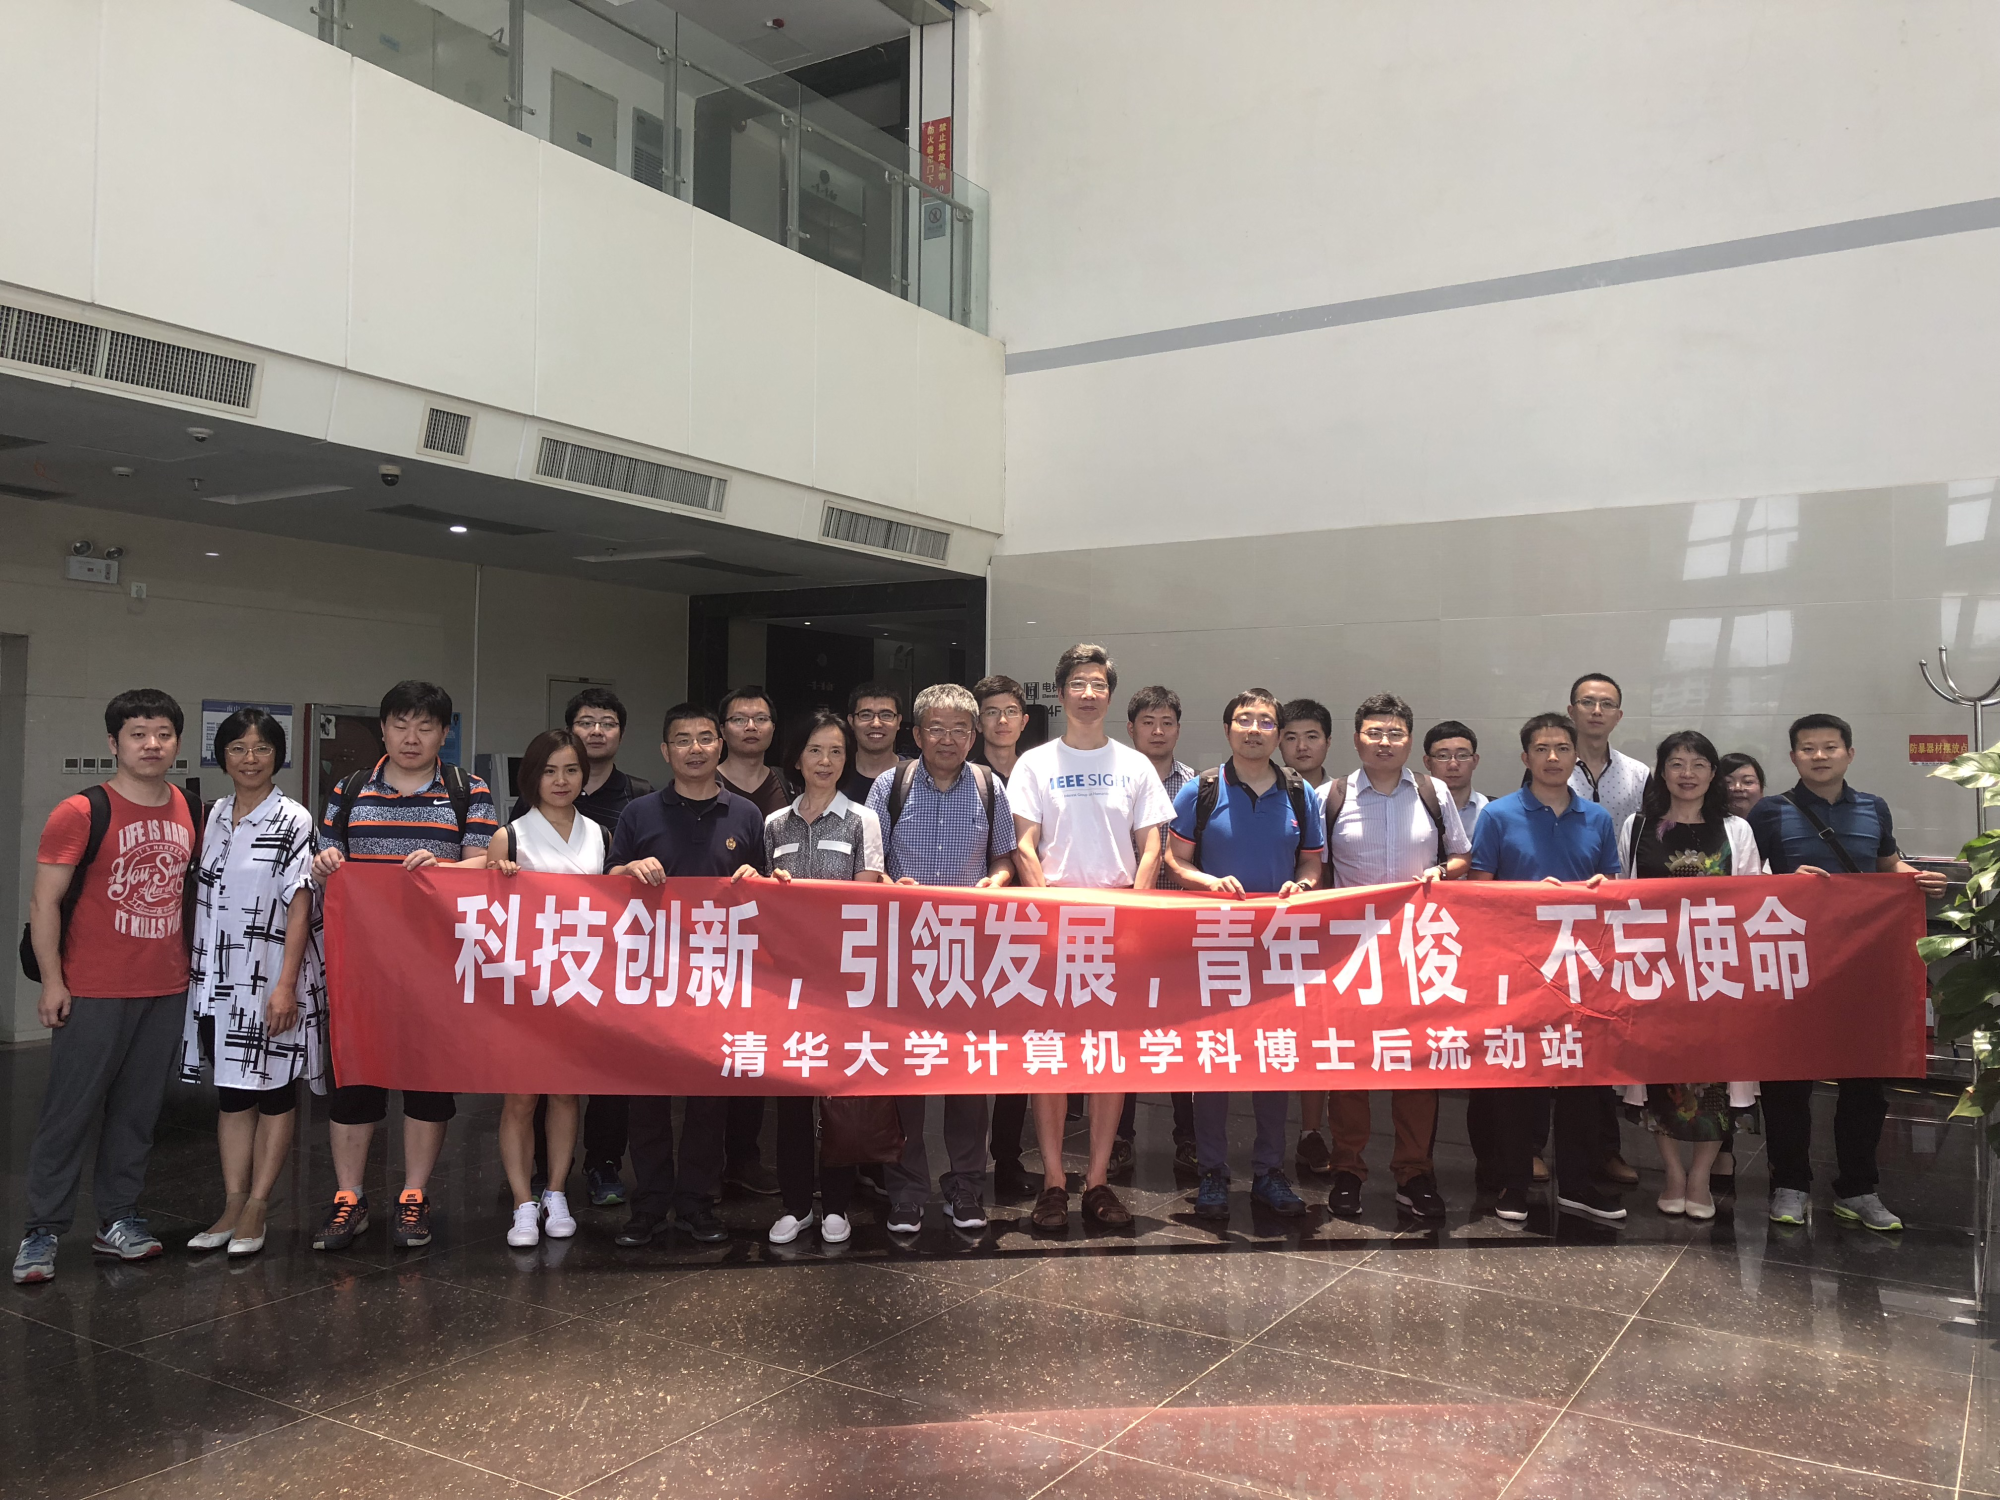 Computer Science Postdocs from Tsinghua University Visits SUSTech